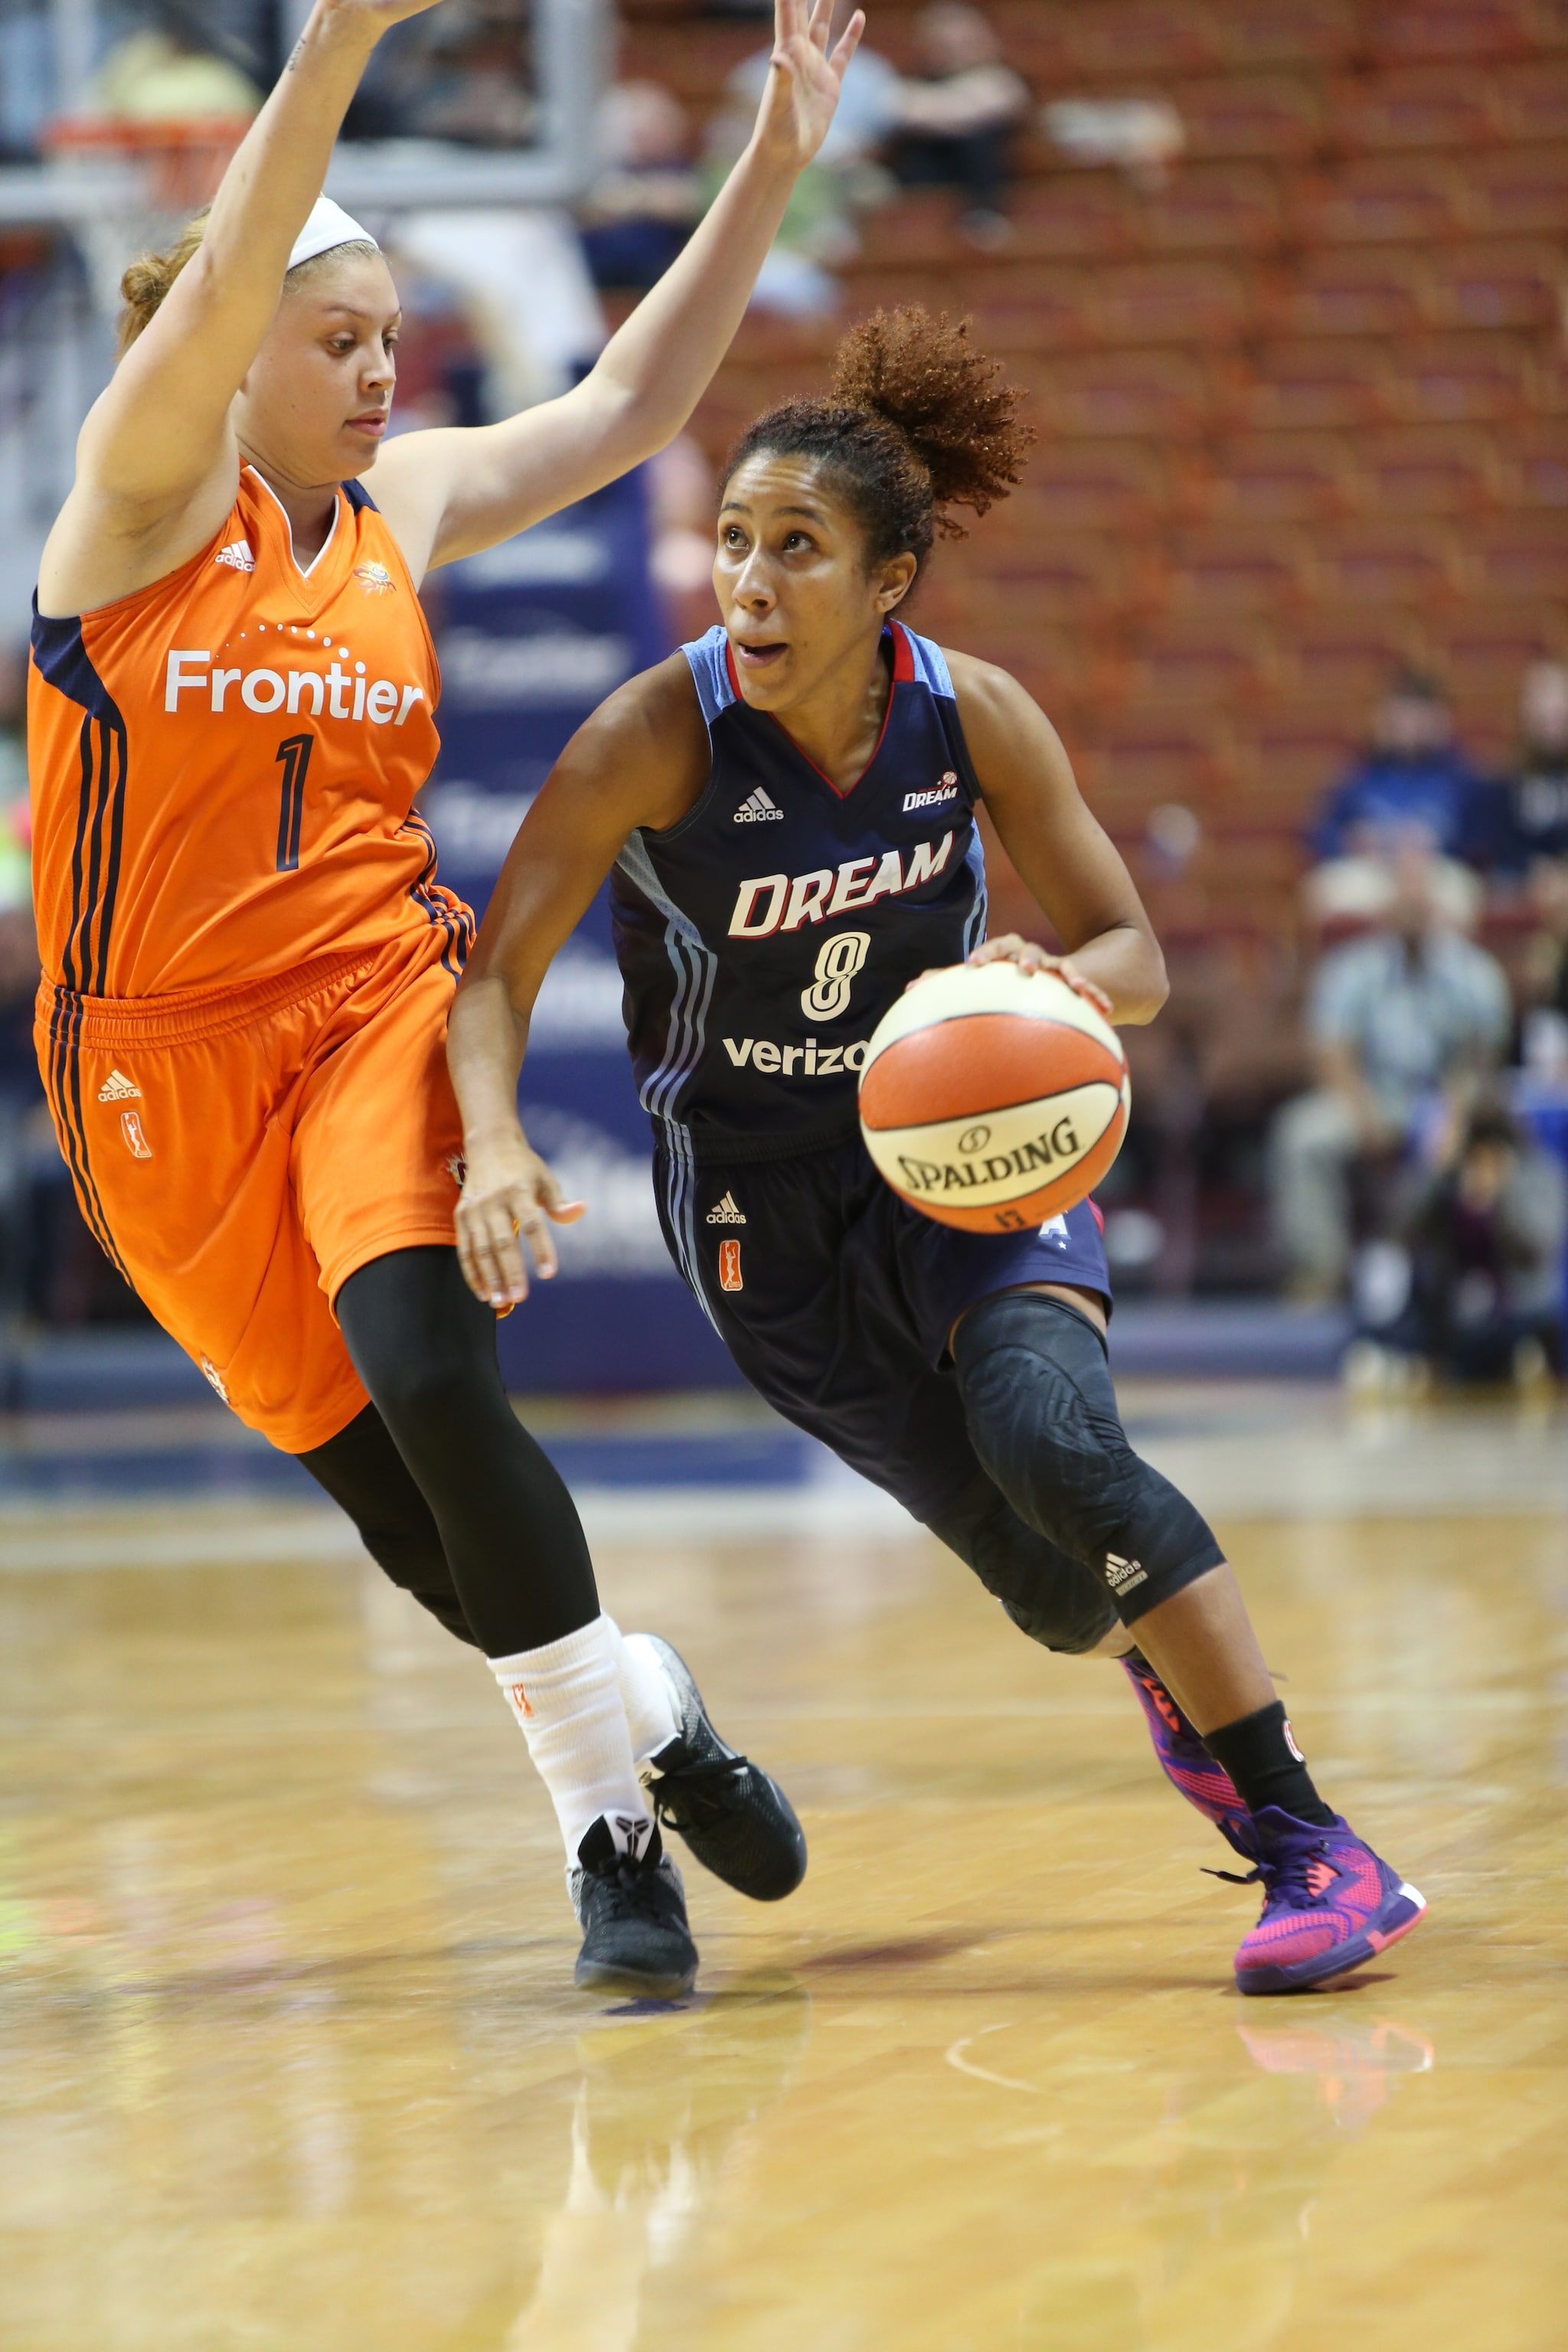 UNCASVILLE, CT - JUNE 3: Carla Cortijo #8 of the Atlanta Dream dribbles the ball against Rachel Banham #1 of the Connecticut Sun on June 3, 2016 at Mohegan Sun Arena in Uncasville, CT. NOTE TO USER: User expressly acknowledges and agrees that, by downloading and or using this Photograph, user is consenting to the terms and conditions of the Getty Images License Agreement. Mandatory Copyright Notice: Copyright 2016 NBAE (Photo by Chris Marion/NBAE via Getty Images)